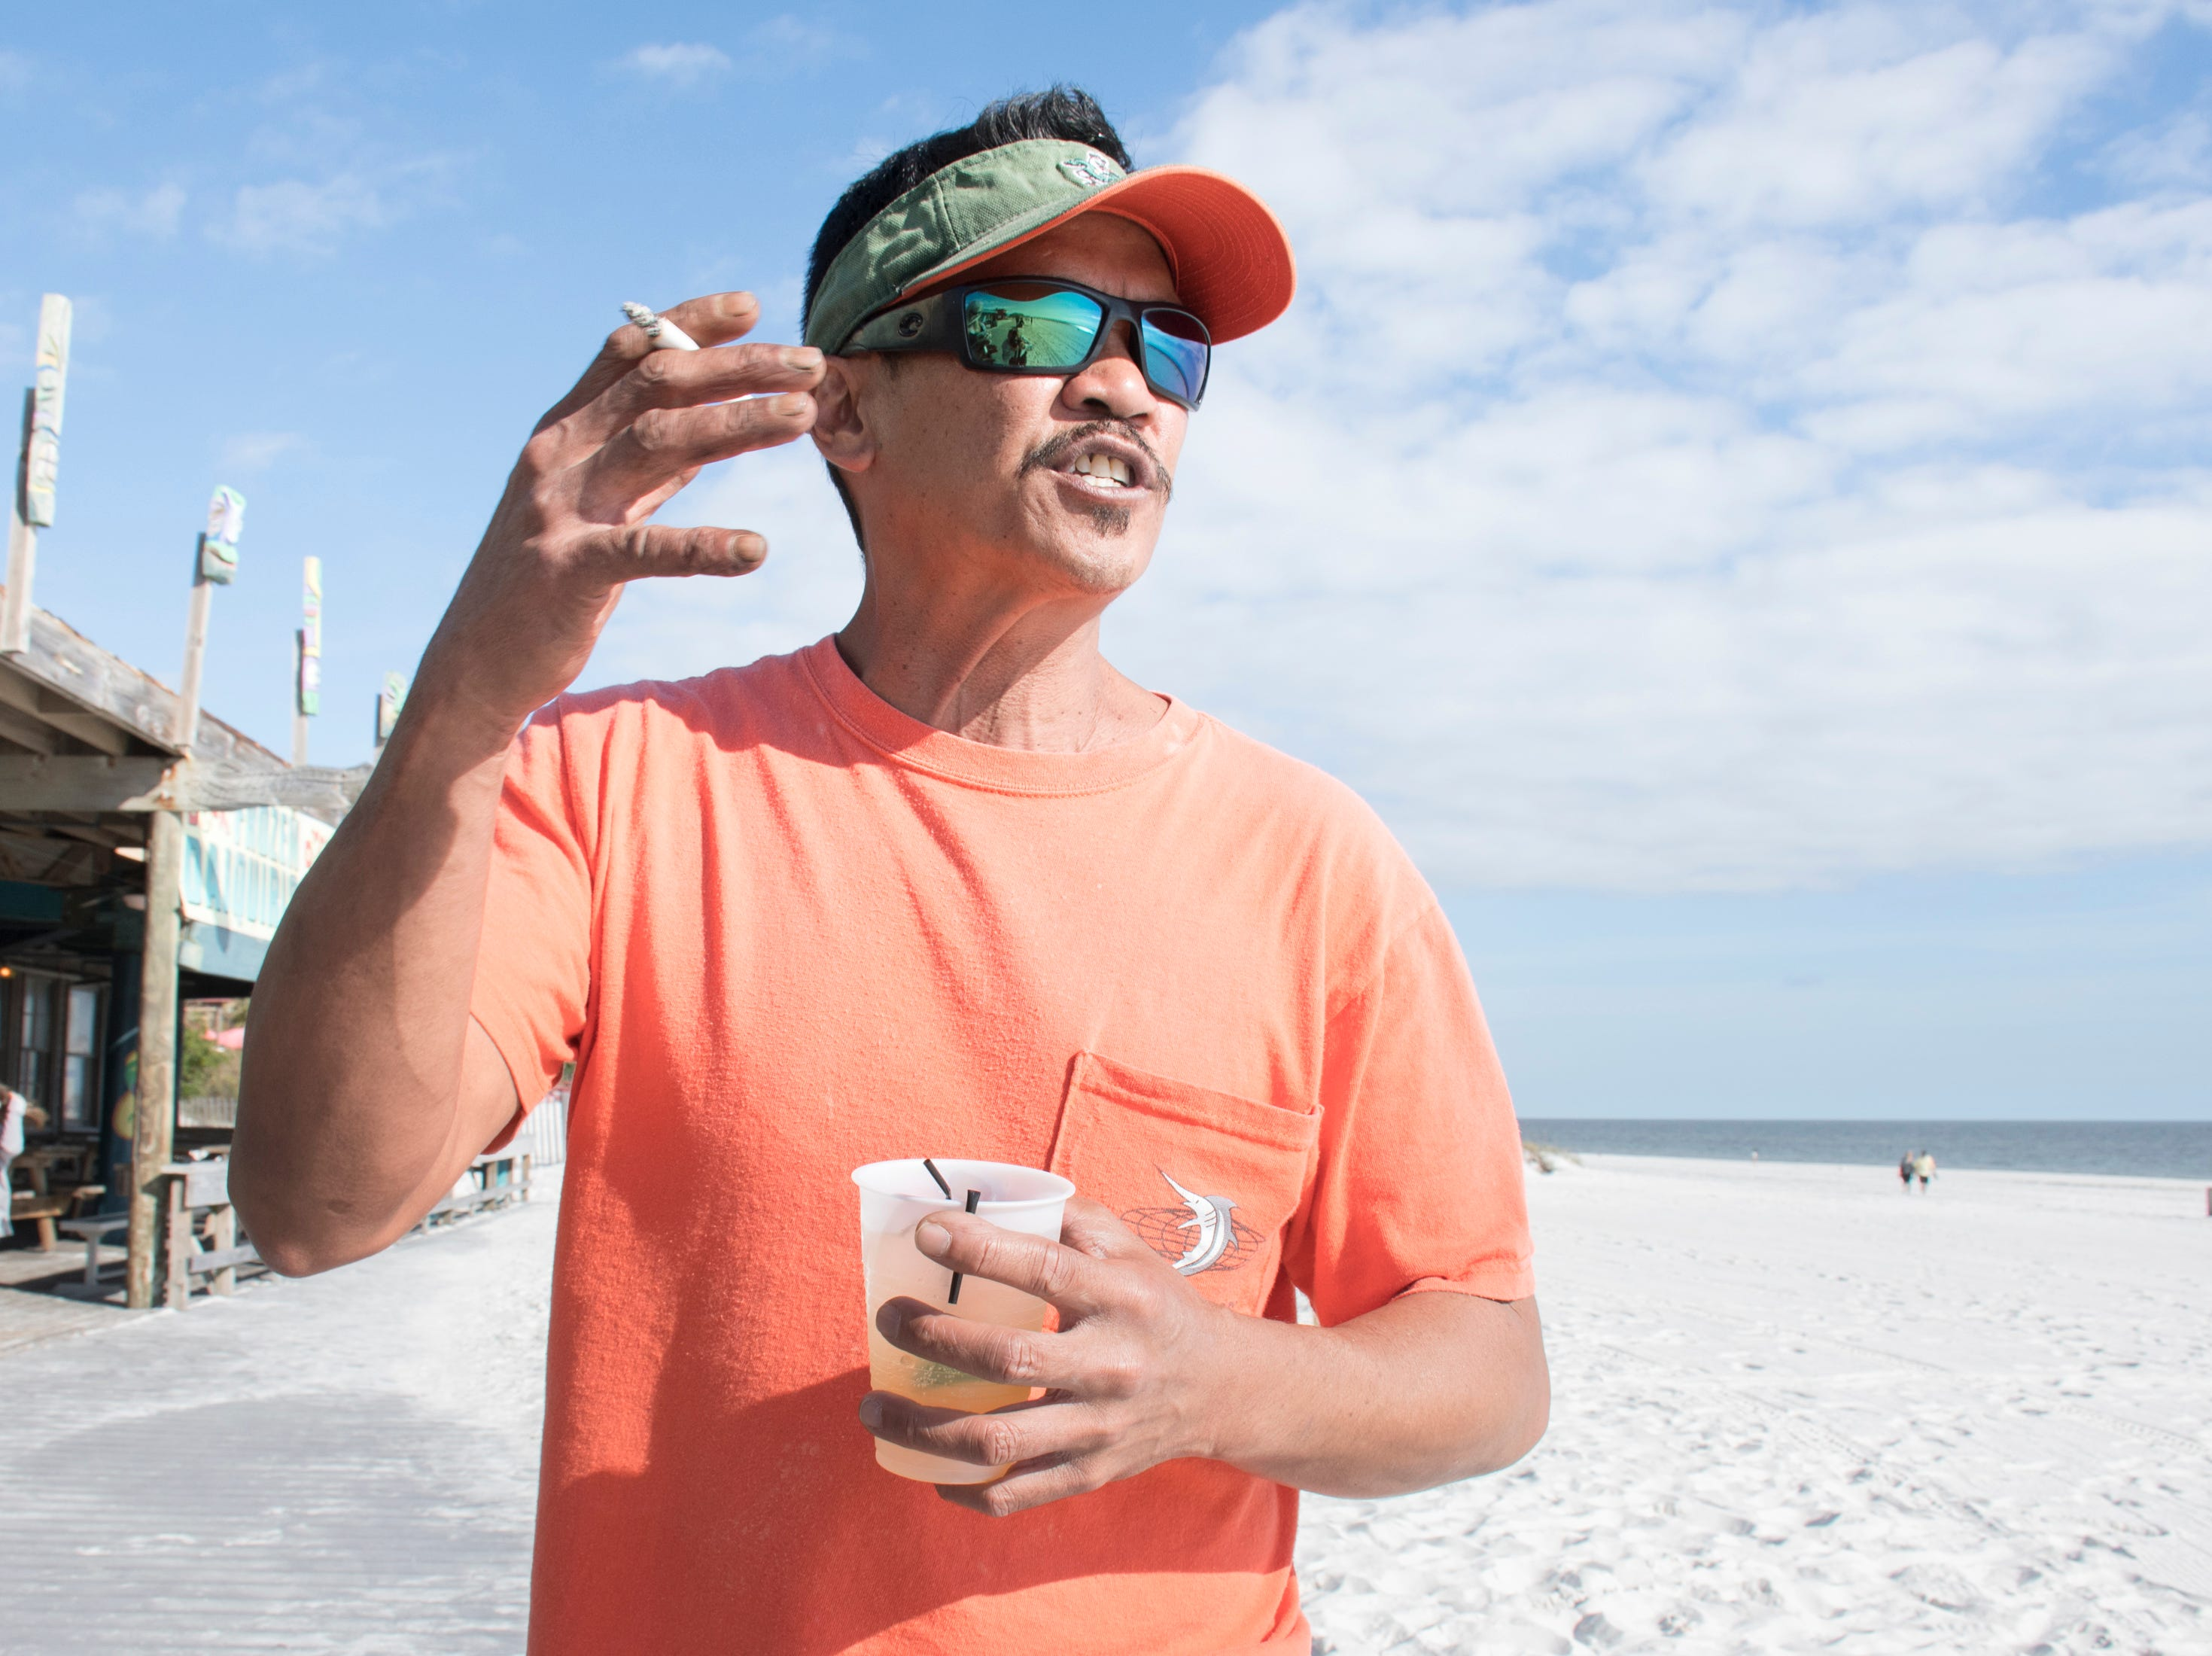 Reggy Gutierrez discusses his views about smoking at the beach in Pensacola on Tuesday, January 8, 2019.  The Florida Legislature is proposing a bill that would ban smoking on all beaches in the state.